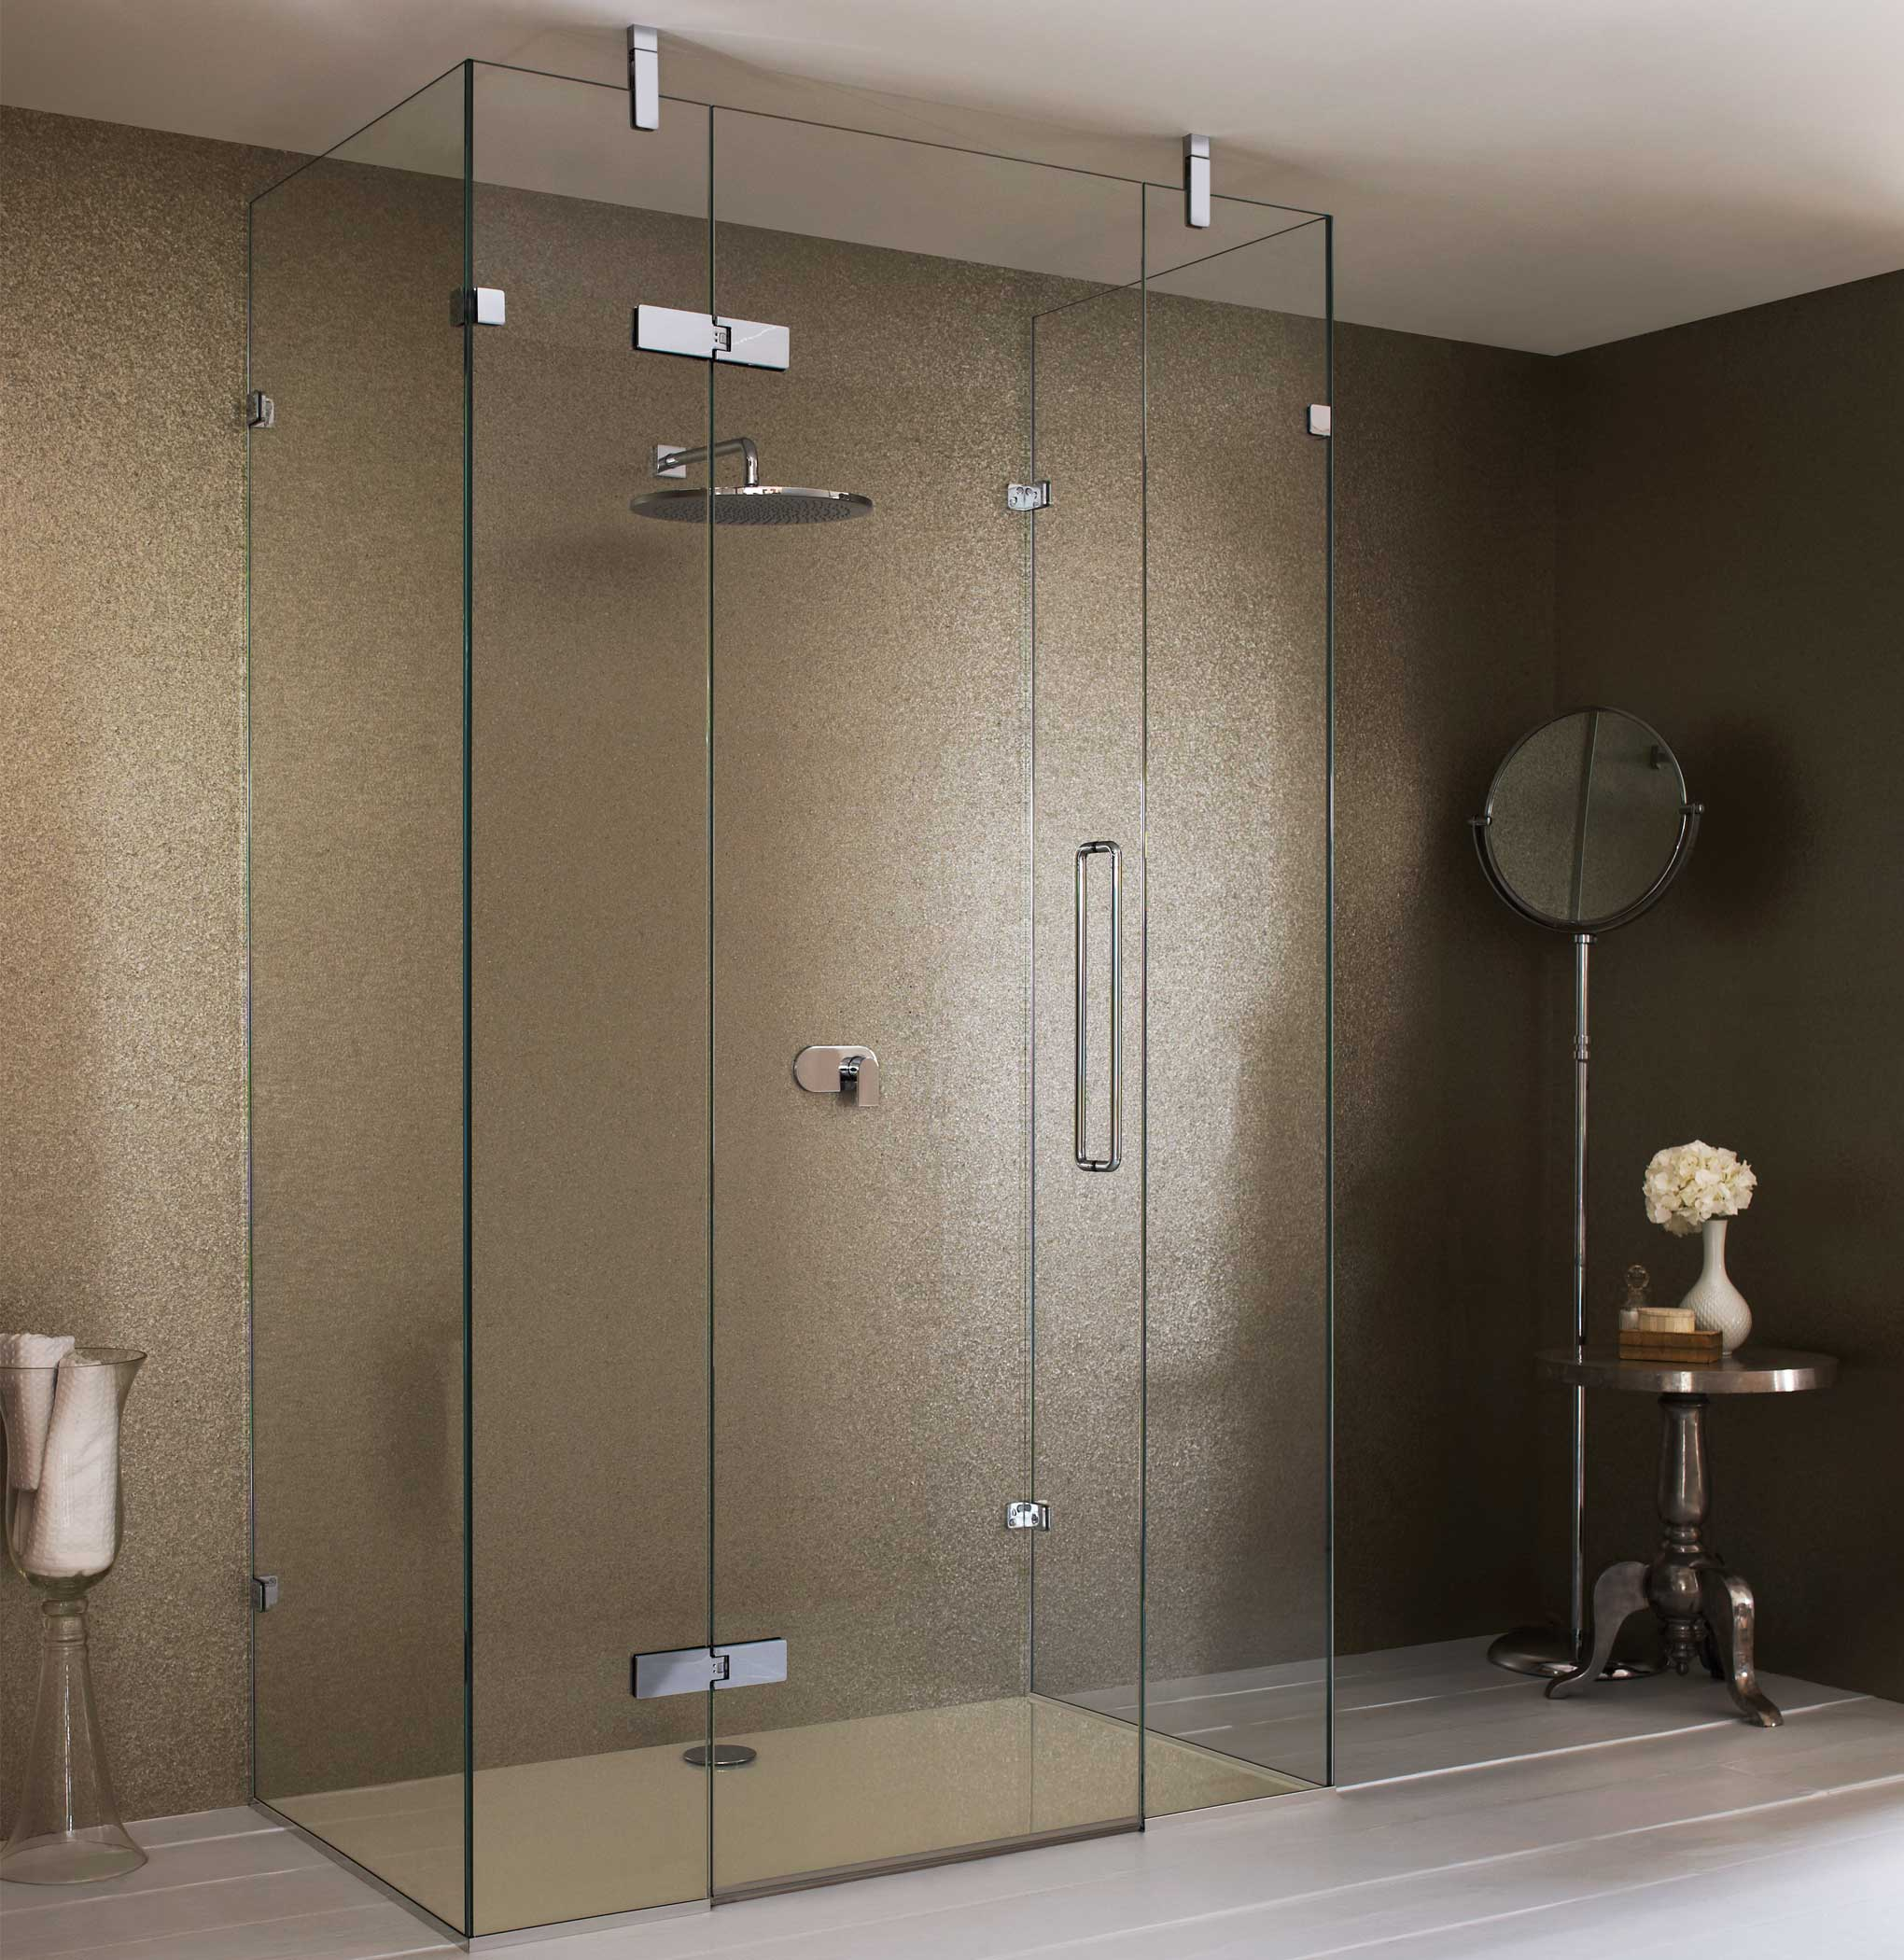 Temperd shower door